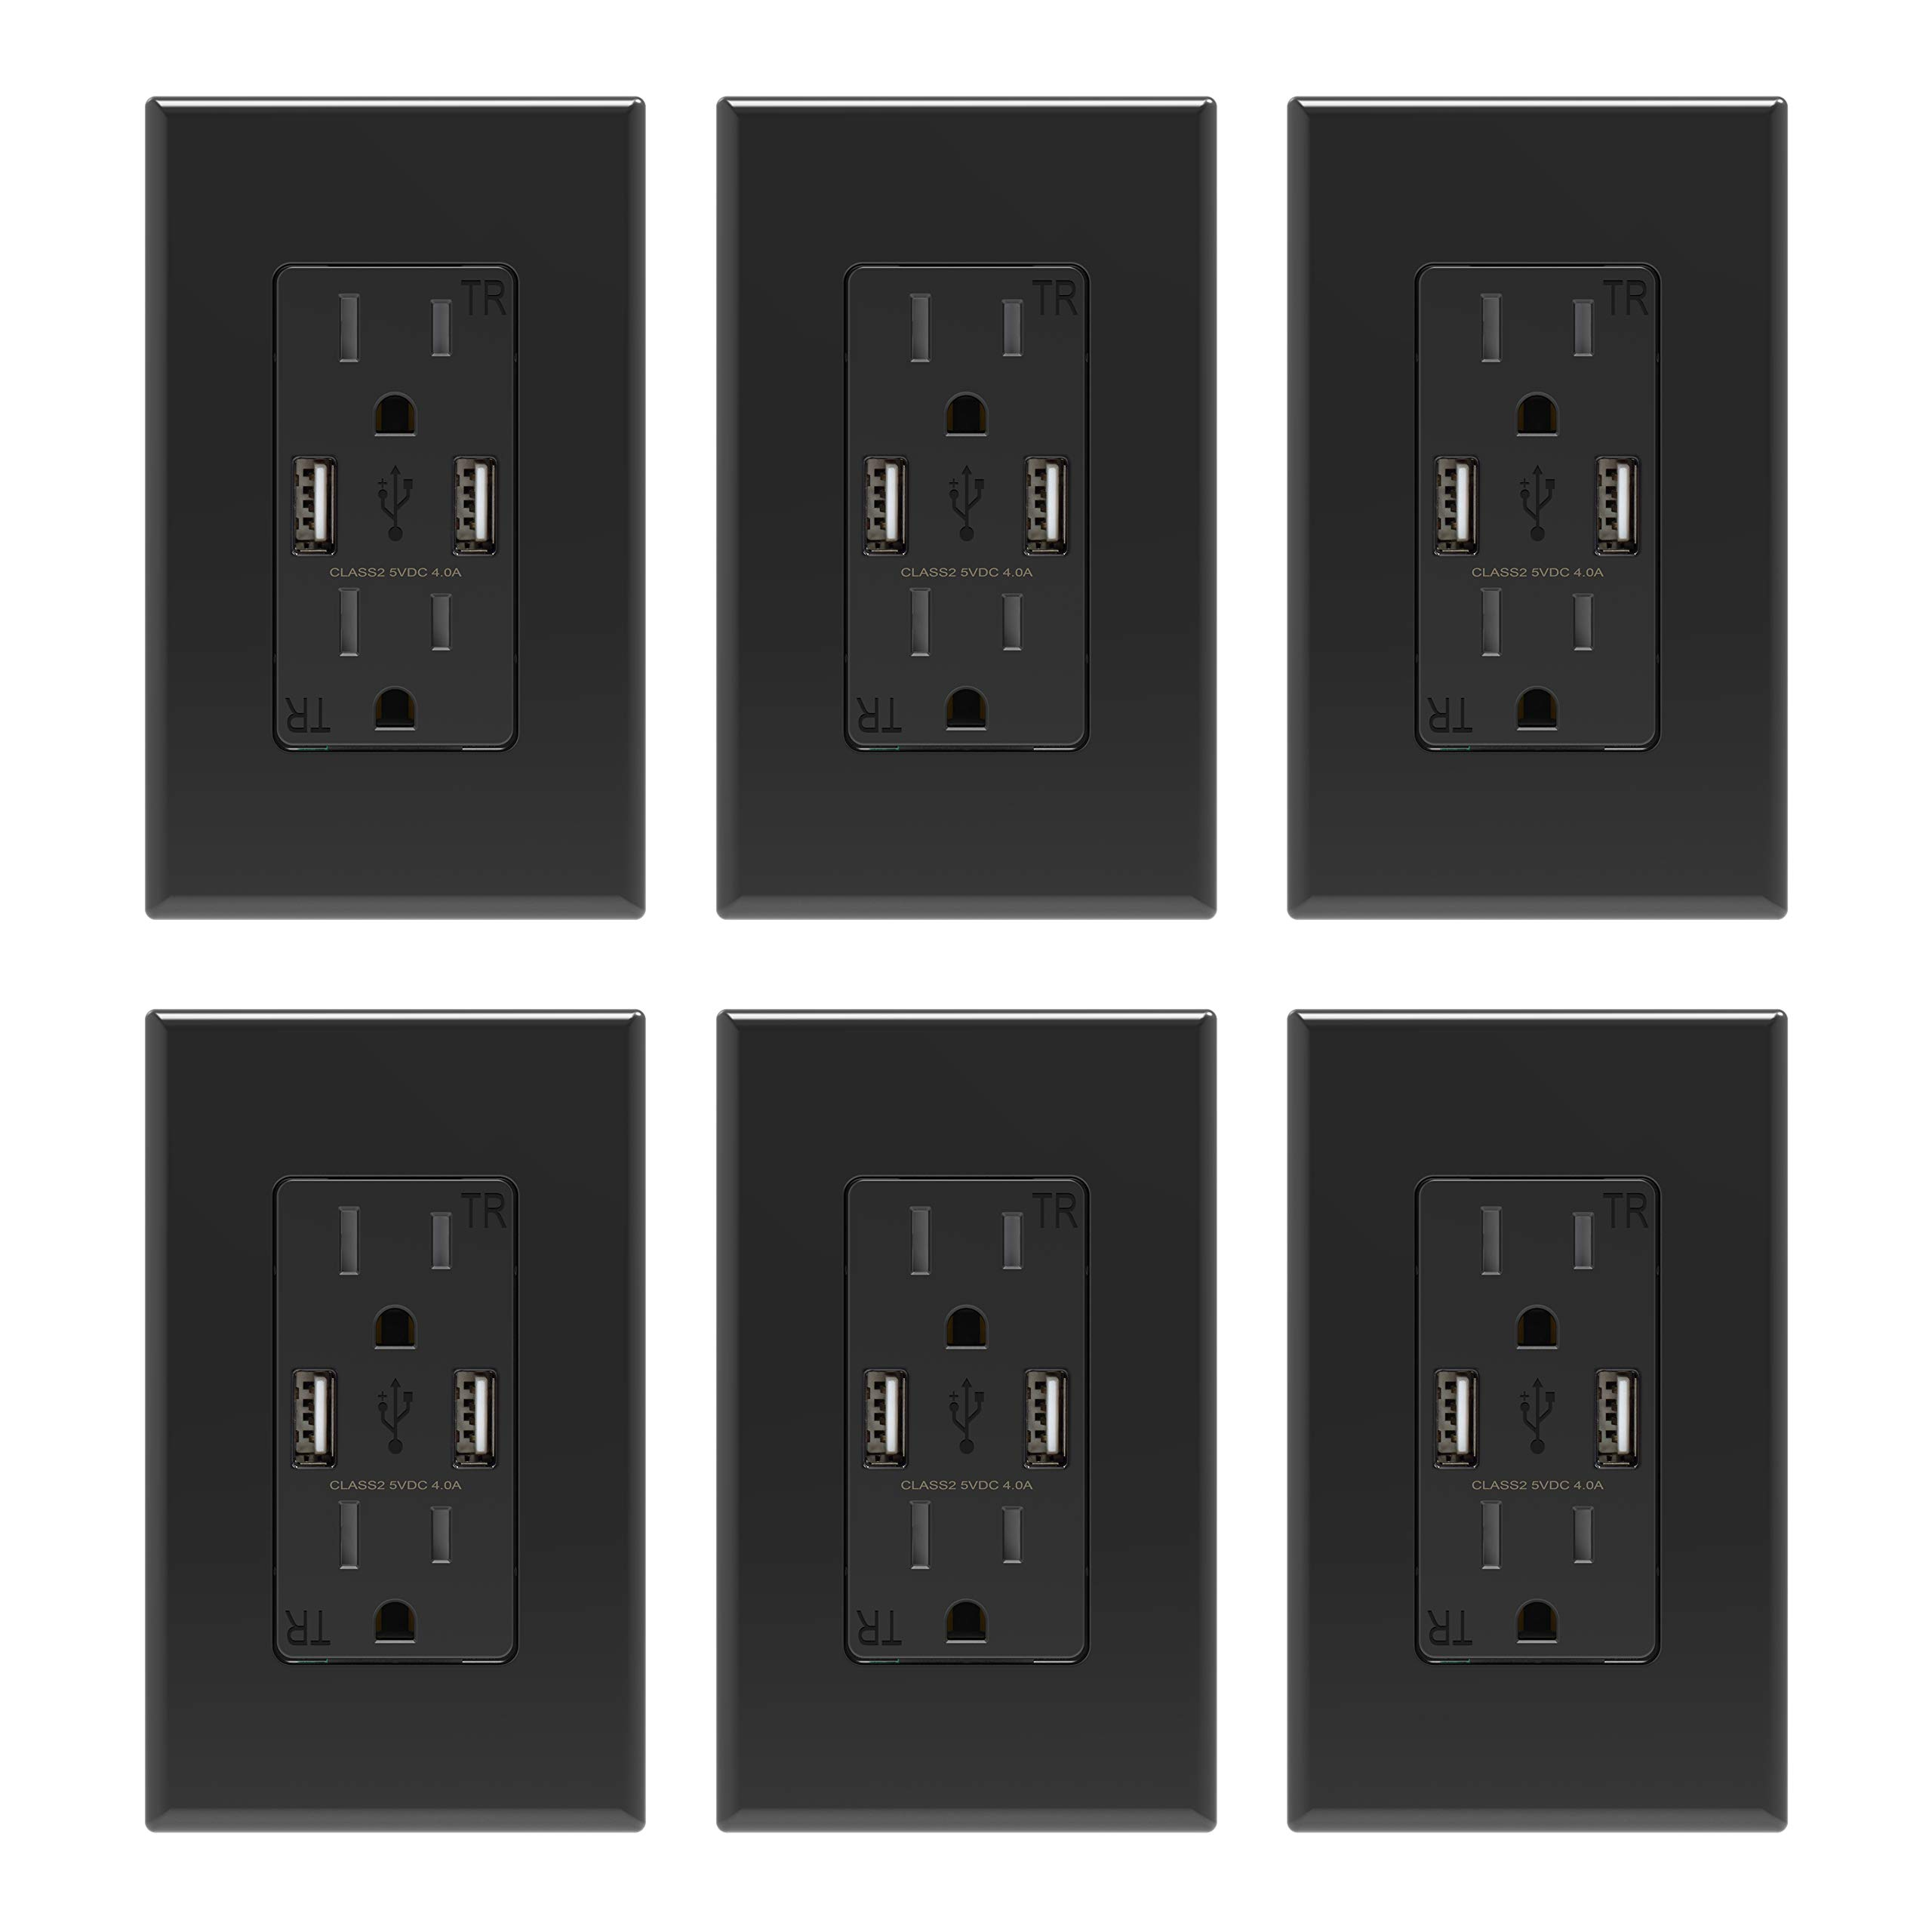 ELEGRP USB Charger Wall Outlet, Dual High Speed 4.0 Amp USB Ports with Smart Chip, 15 Amp Duplex Tamper Resistant Receptacle, Wall Plate Included, UL Listed (6 Pack, Black)